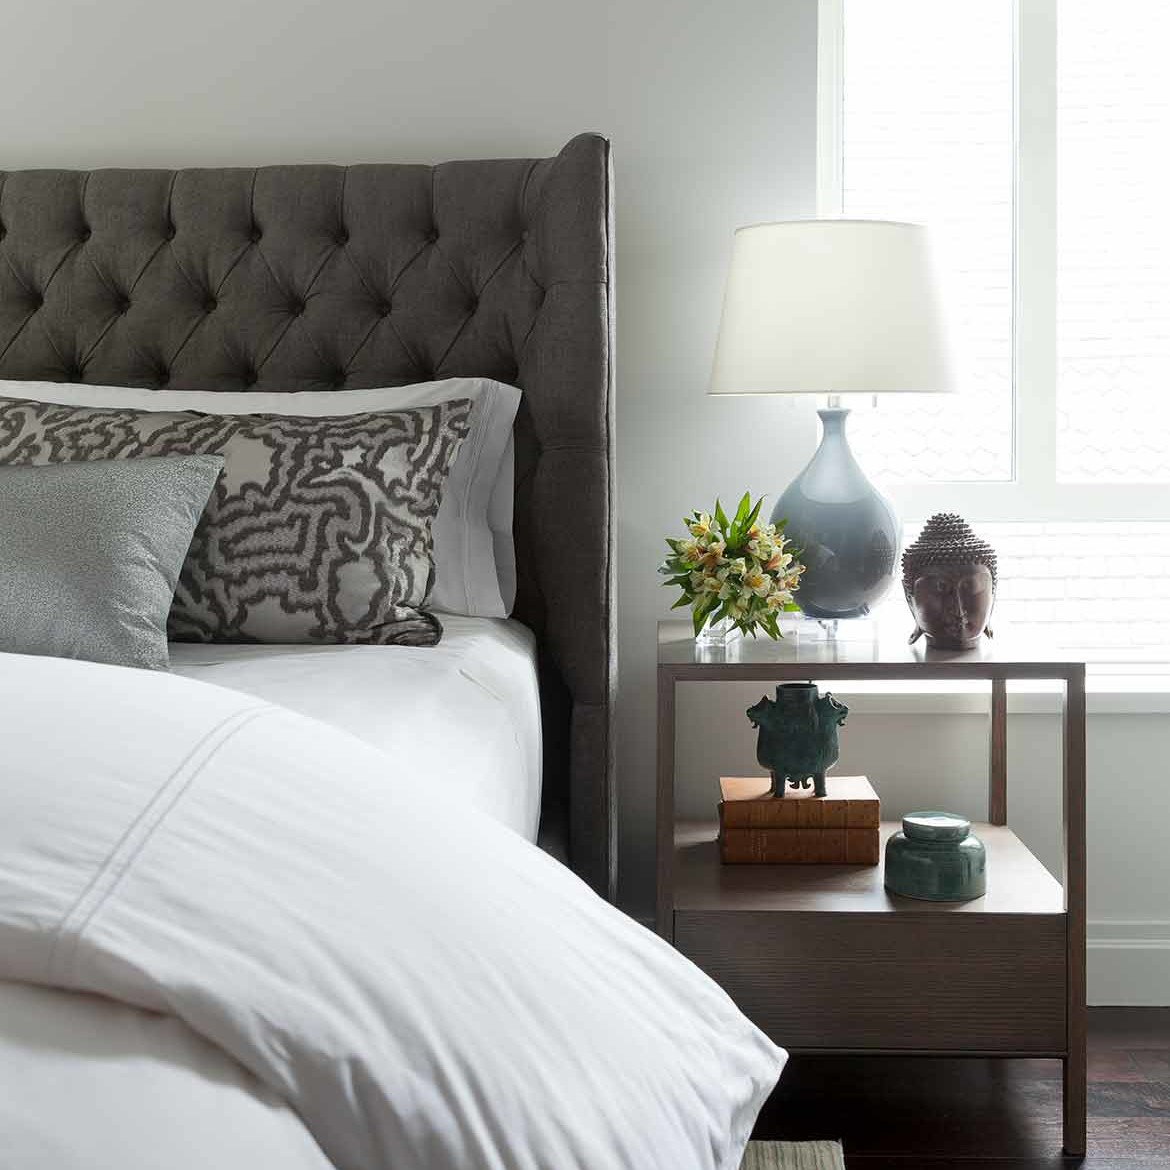 Guest room interior design with chic furnishings and hotel sheeting in a NYC apartment